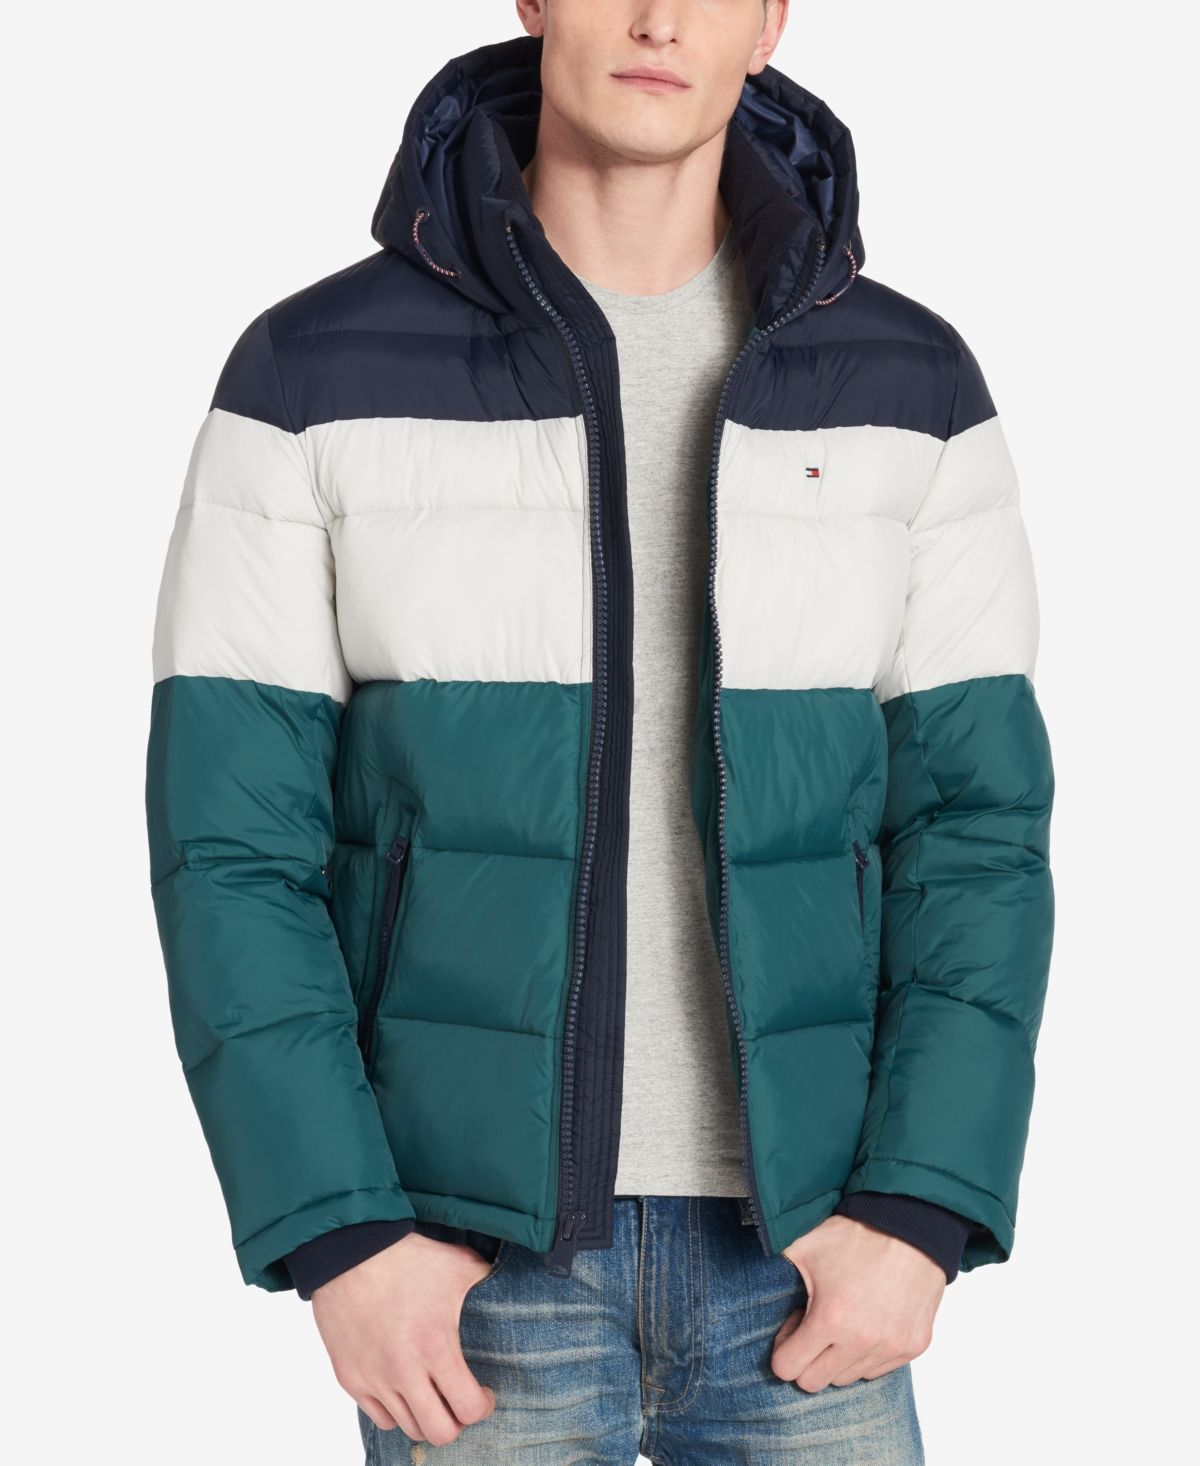 Tommy Hilfiger Men S Quilted Puffer Jacket Created For Macy S Reviews Coats Jackets Men Macy S In 2021 Quilted Puffer Jacket Mens Jackets Puffer Jackets [ 1466 x 1200 Pixel ]